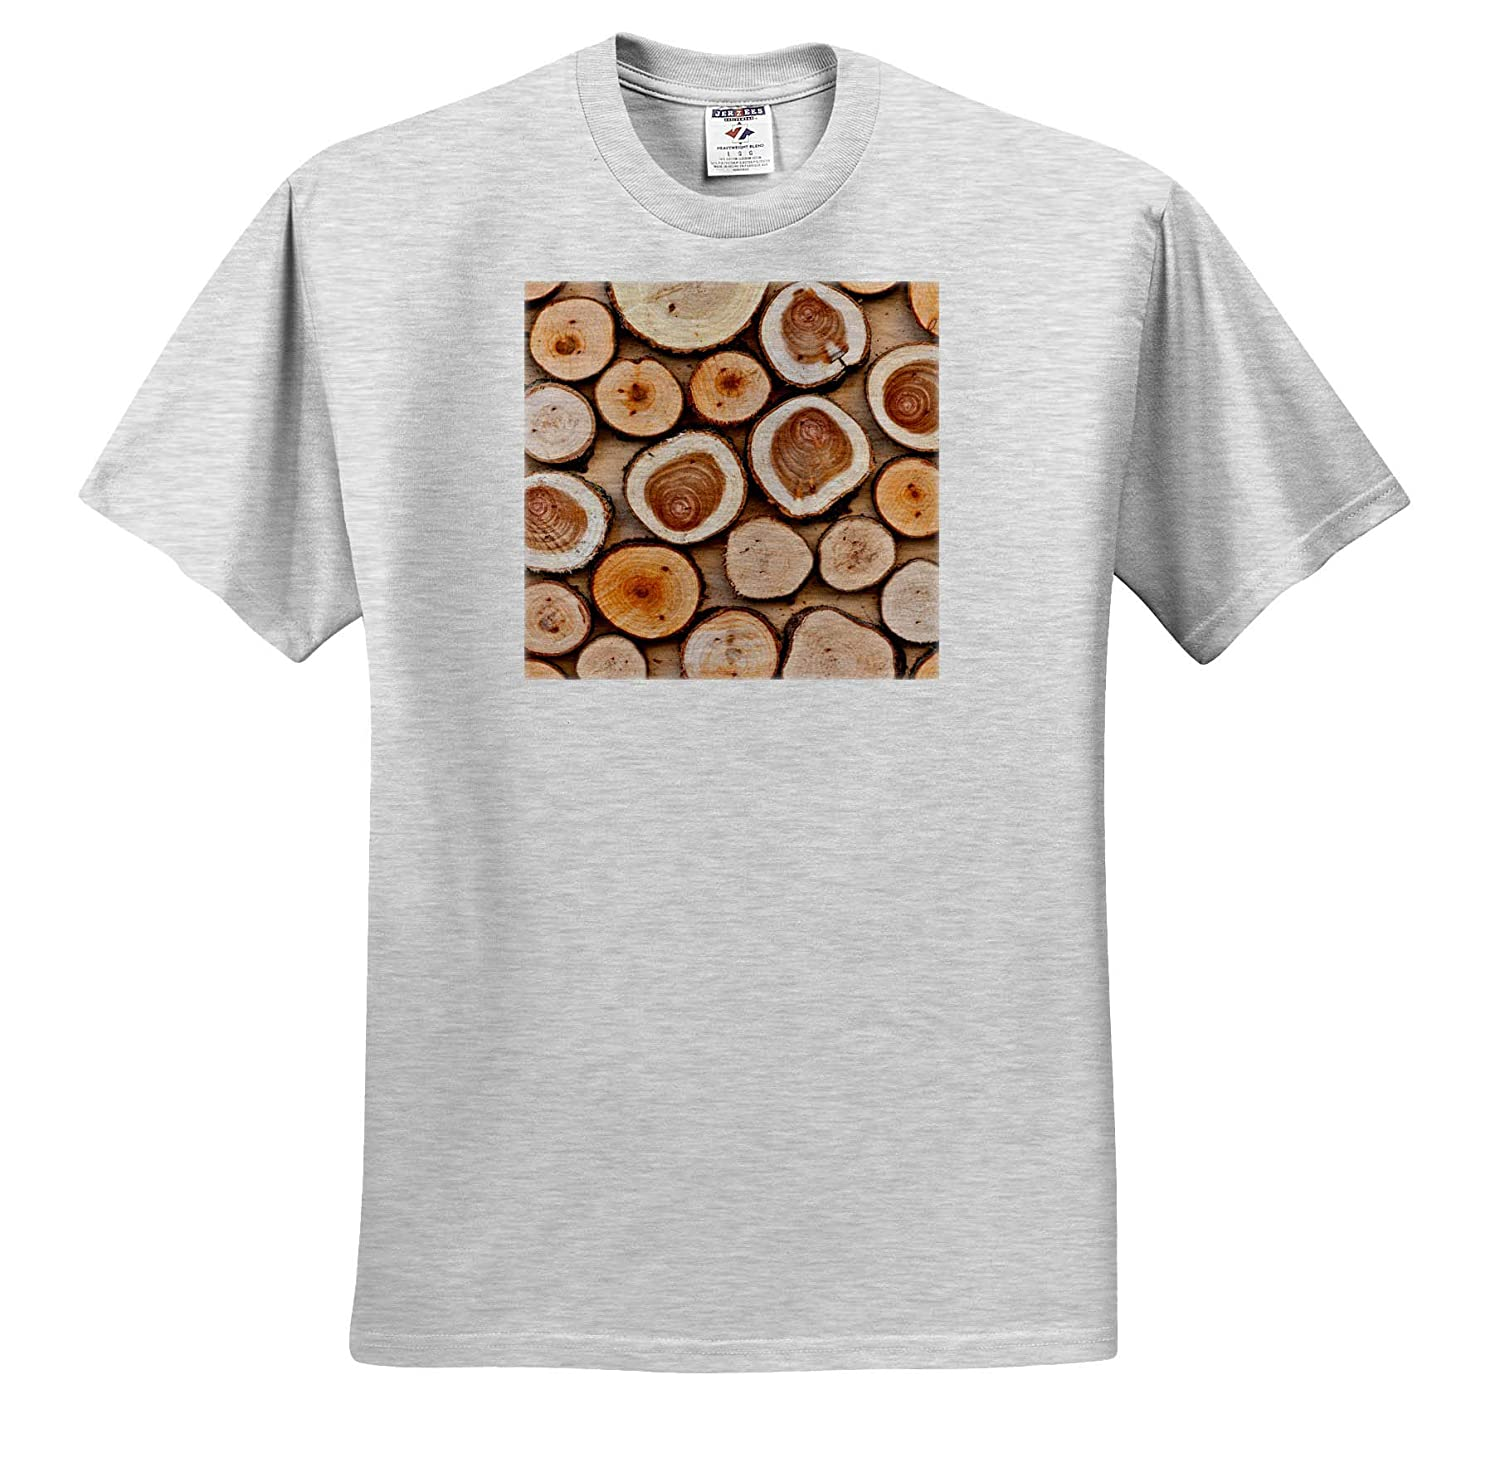 Image of Wooden disks on Plywood T-Shirts Beautiful Natural Timber Pattern Texture Wood 3dRose Alexis Photography